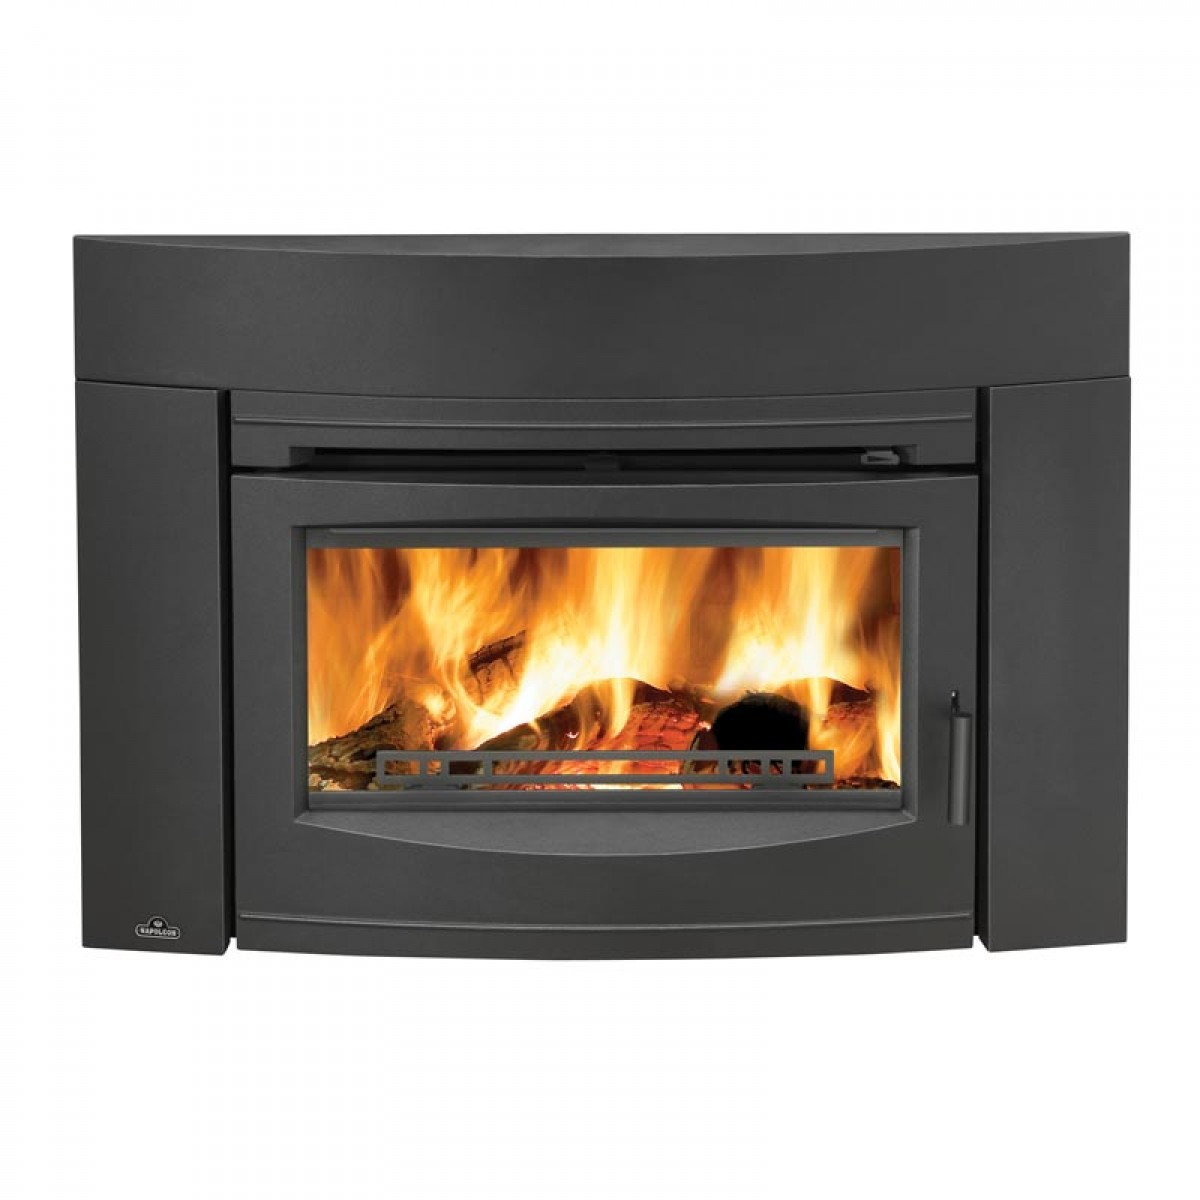 Napoleon epi3 wood burning fireplace insert w cast iron Contemporary wood fireplace insert